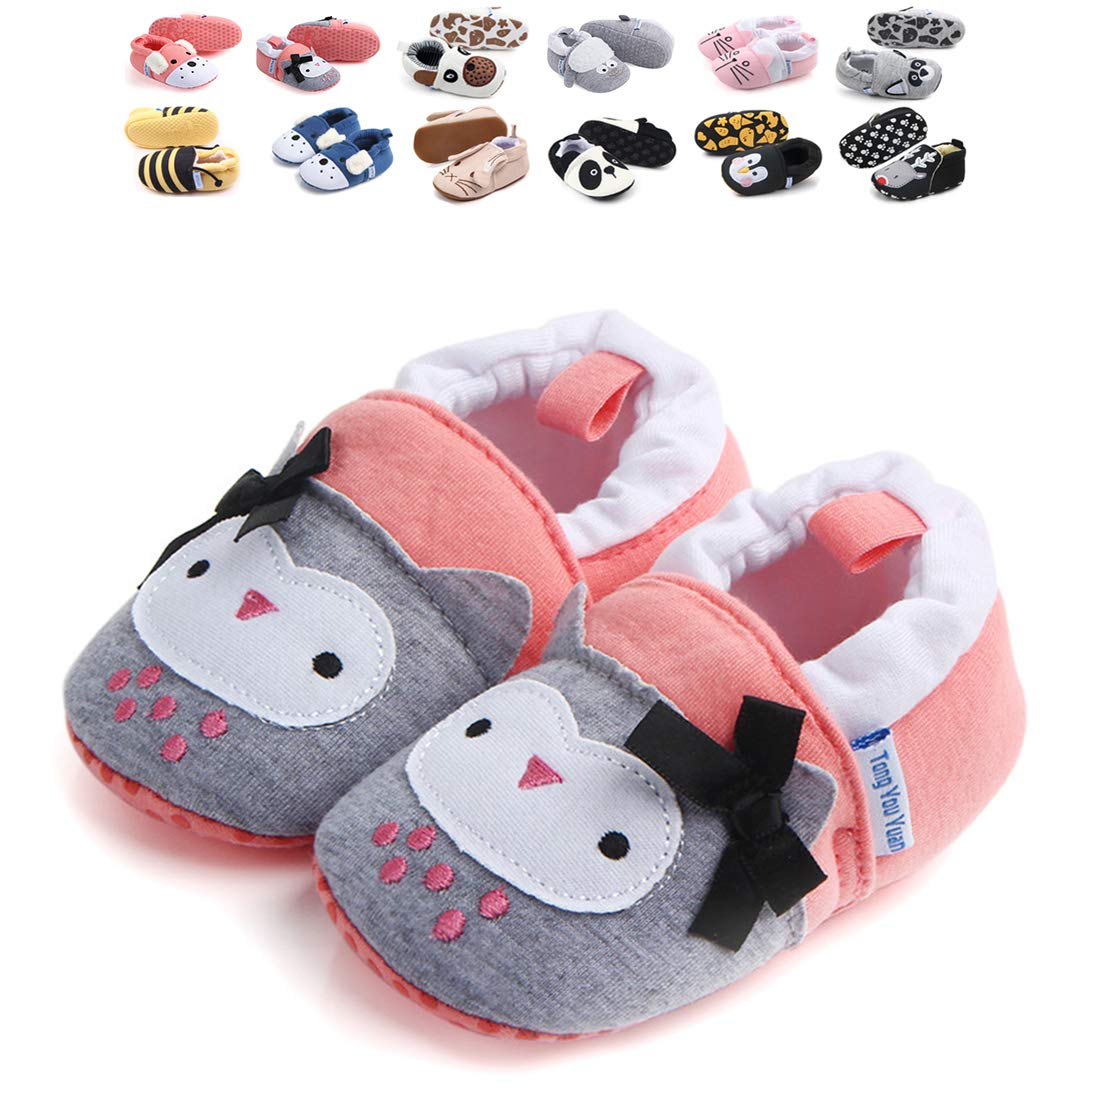 Sawimlgy Infant Baby Boys Girls Anti Slip Sole Walking Slippers Soft Socks Shoes House Moccasins First Crib Shoes Newborn Gift